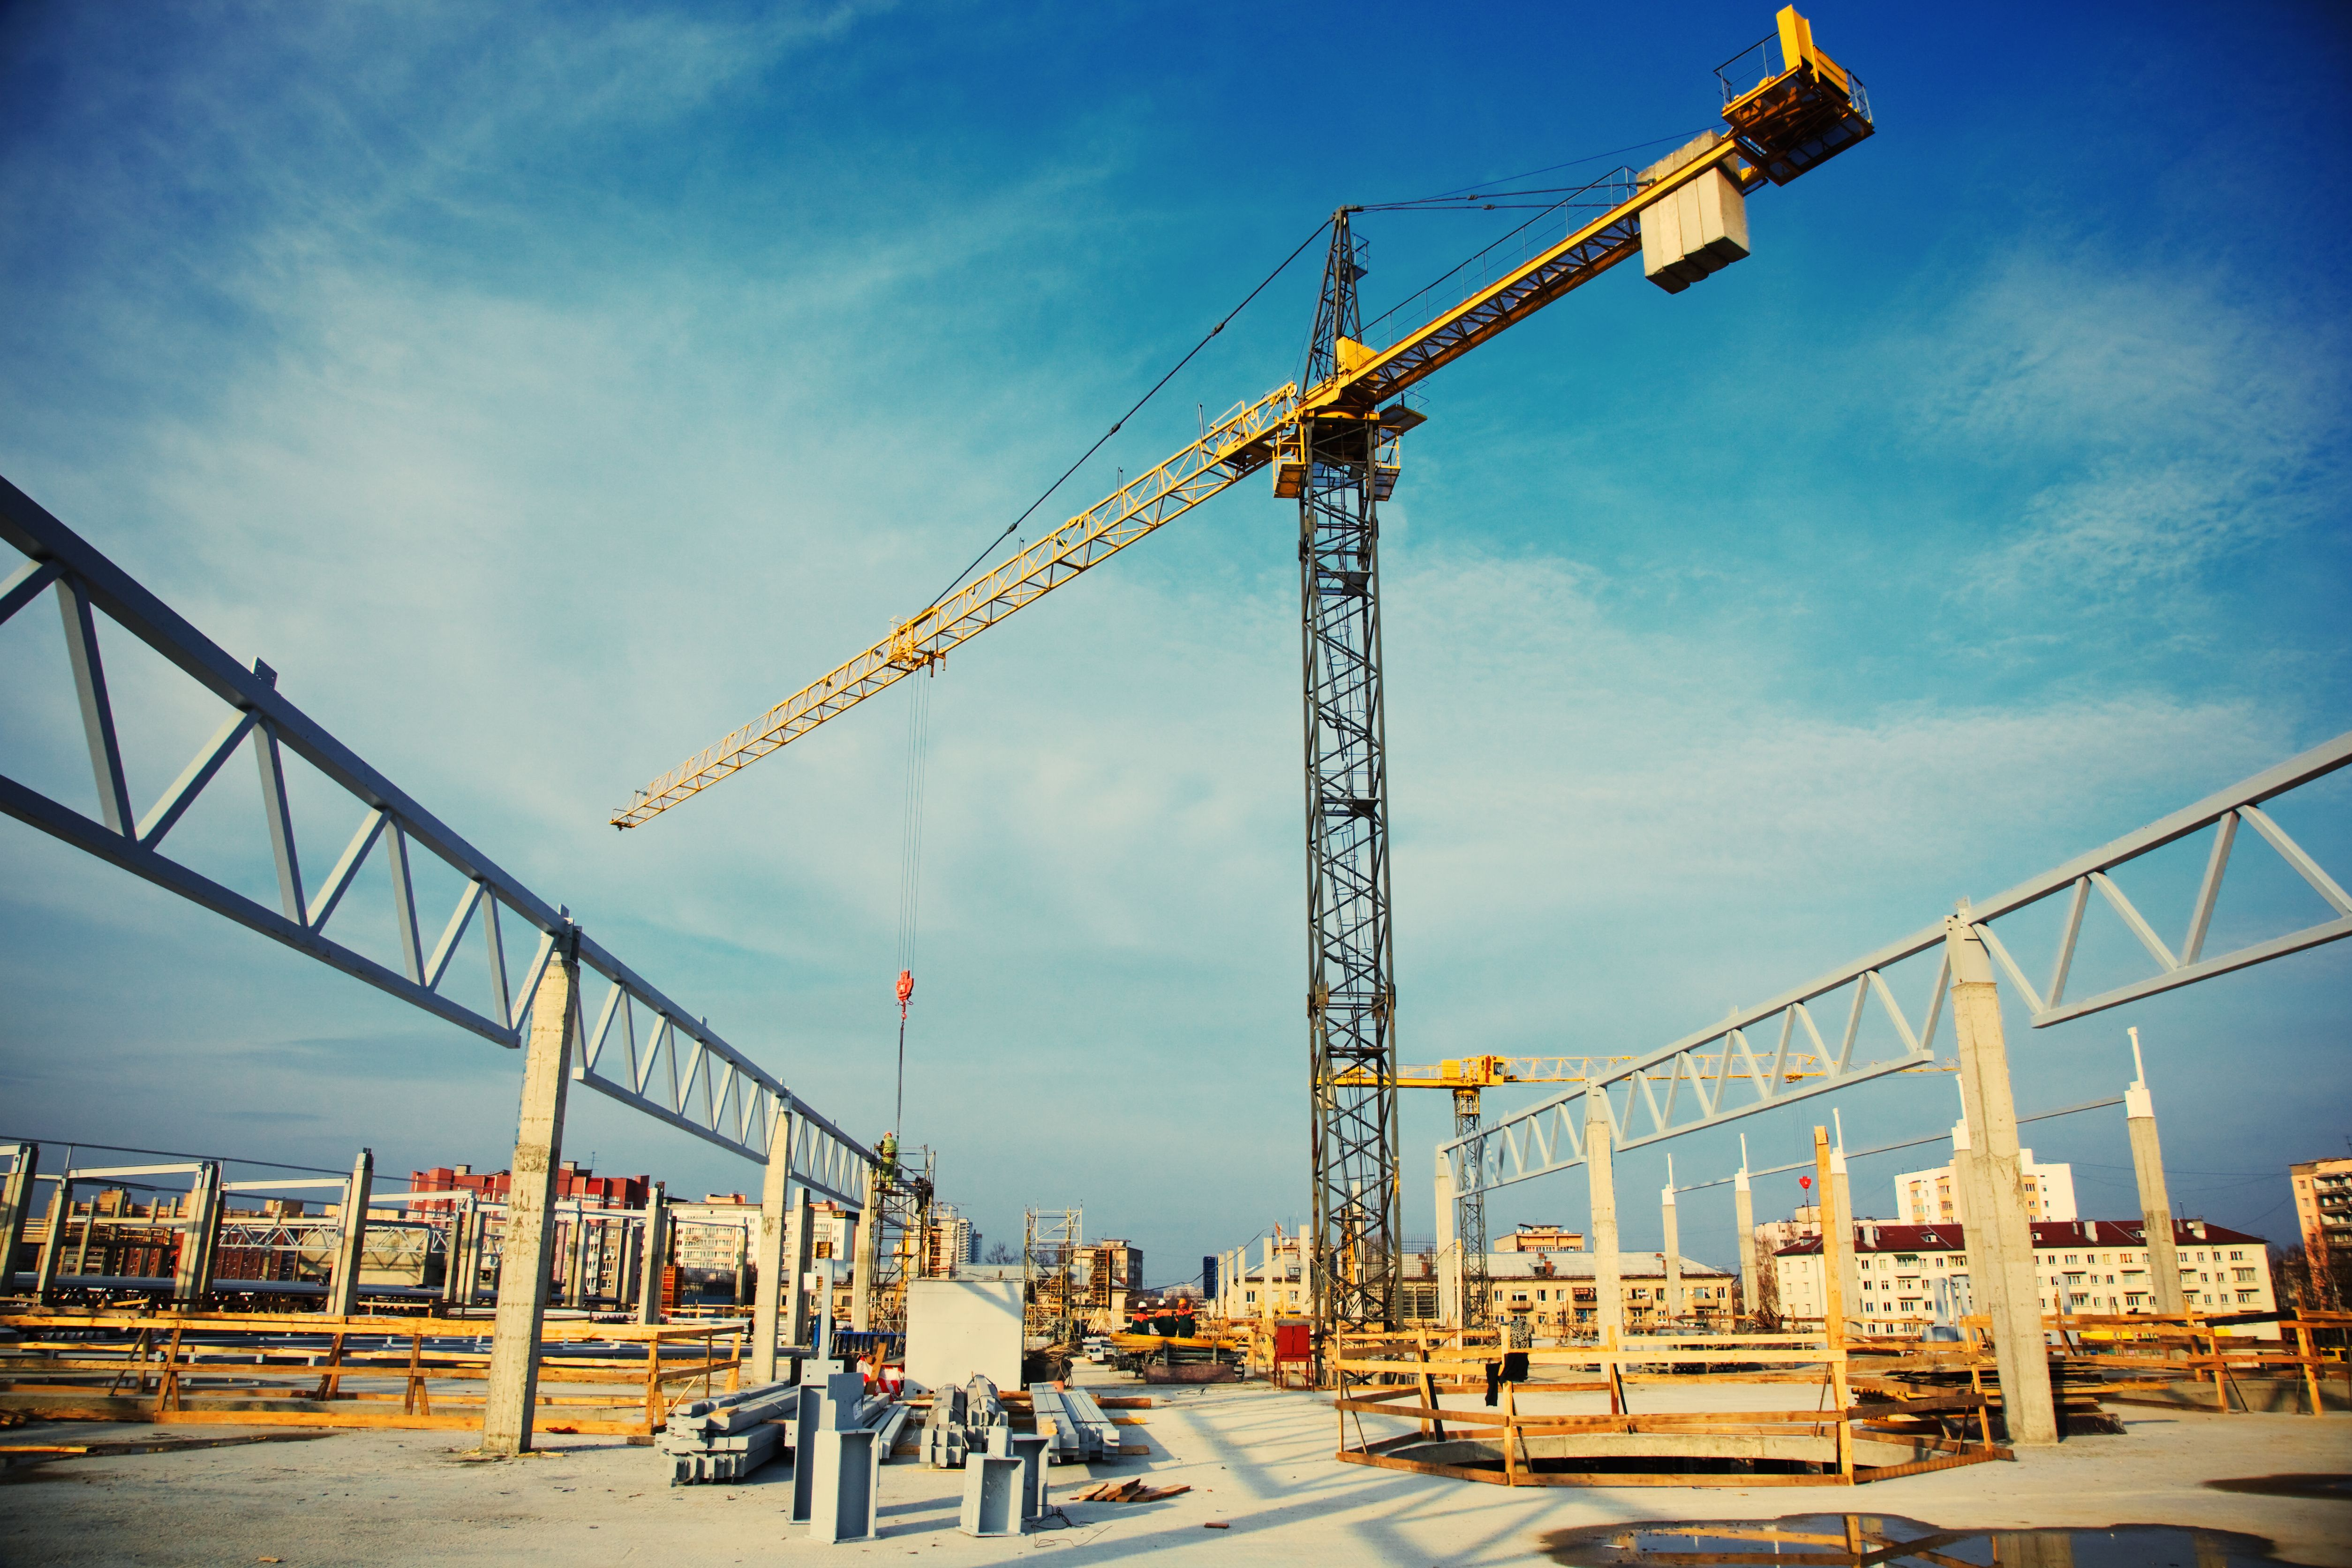 Contact construction site construction contract